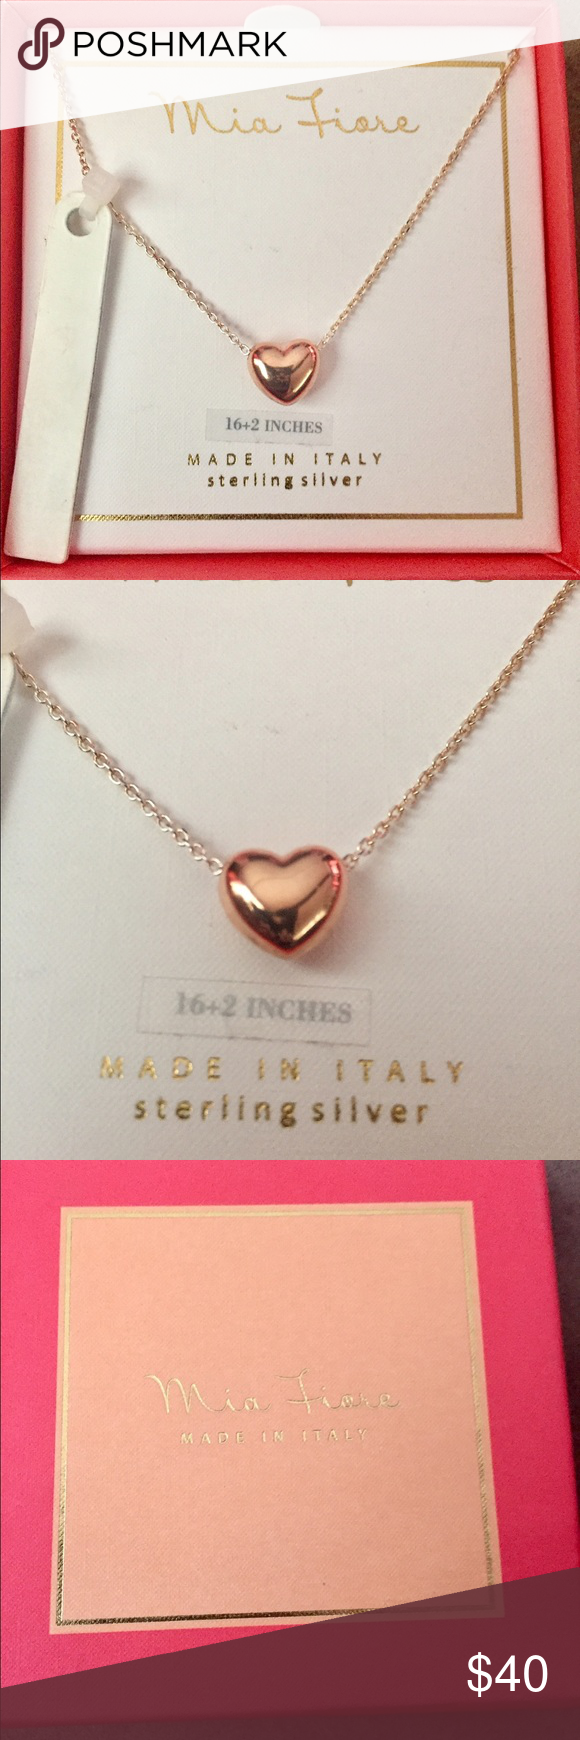 NEWMia Fiore rose gold puffed heart SS necklace NWT Ss Rose gold